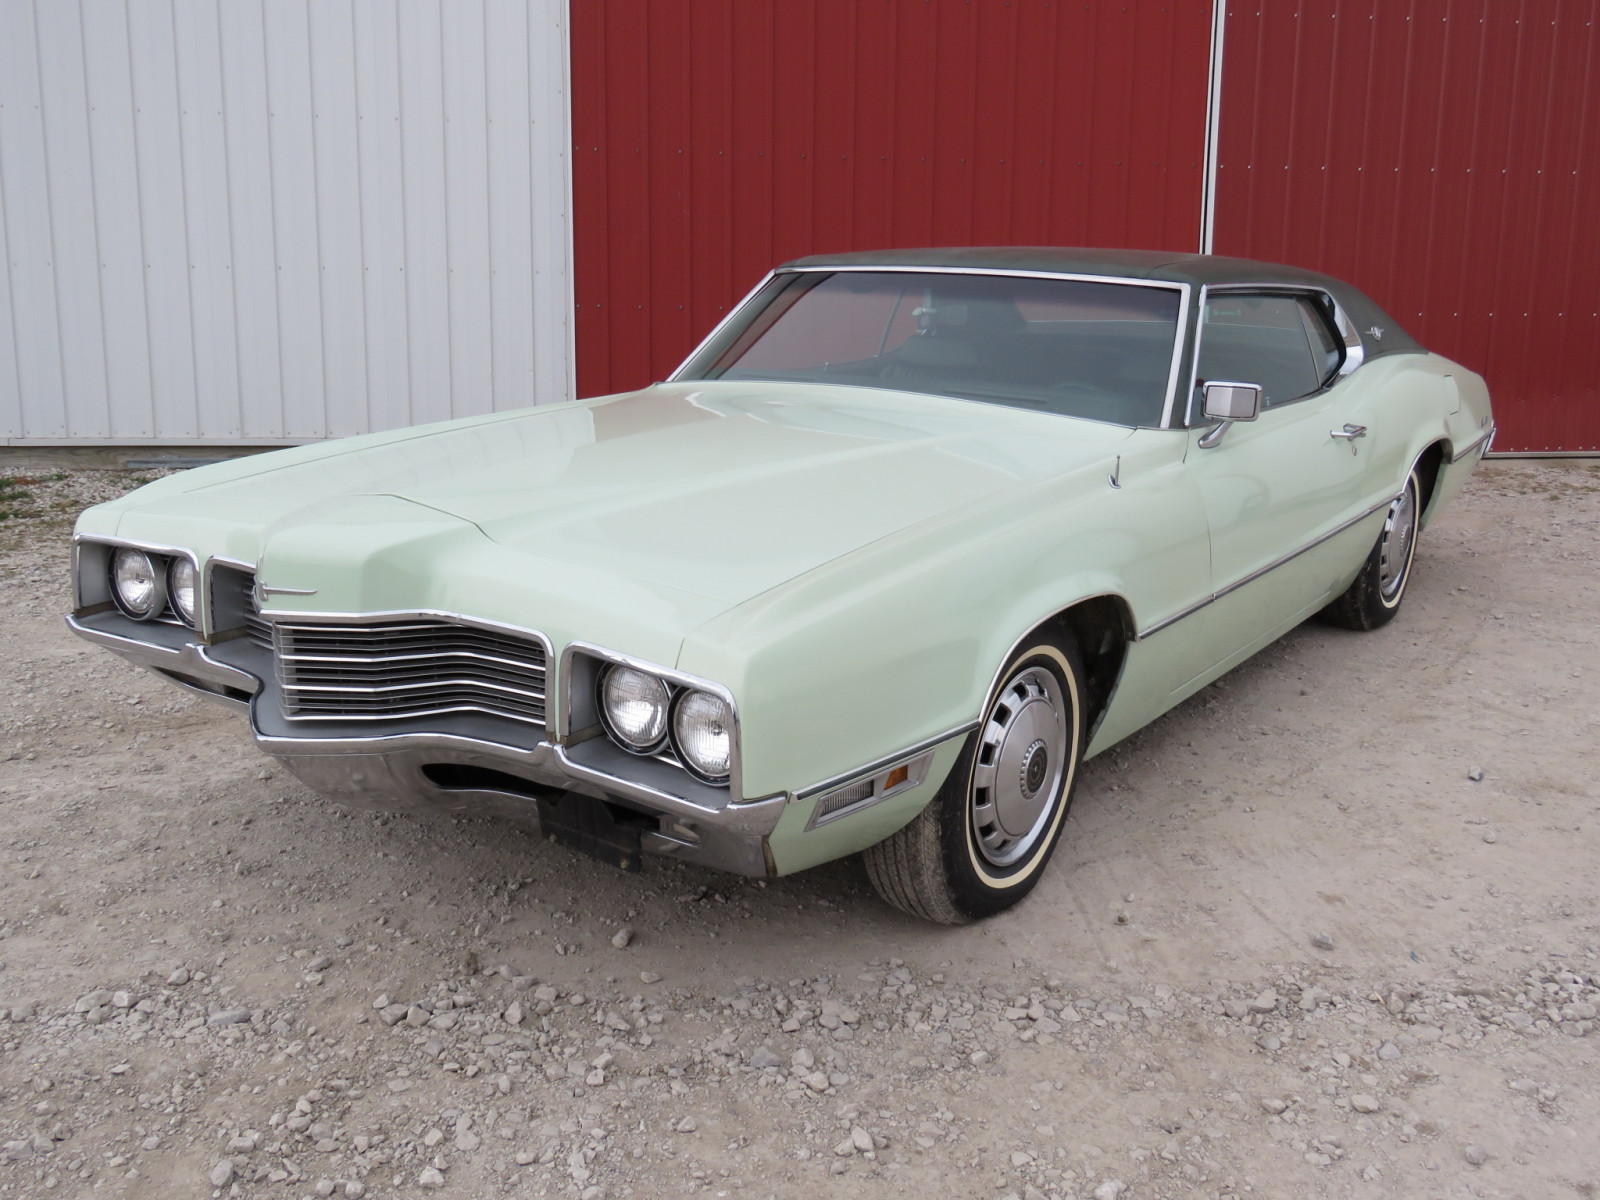 1971 Ford Thunderbird Coupe - Image 1